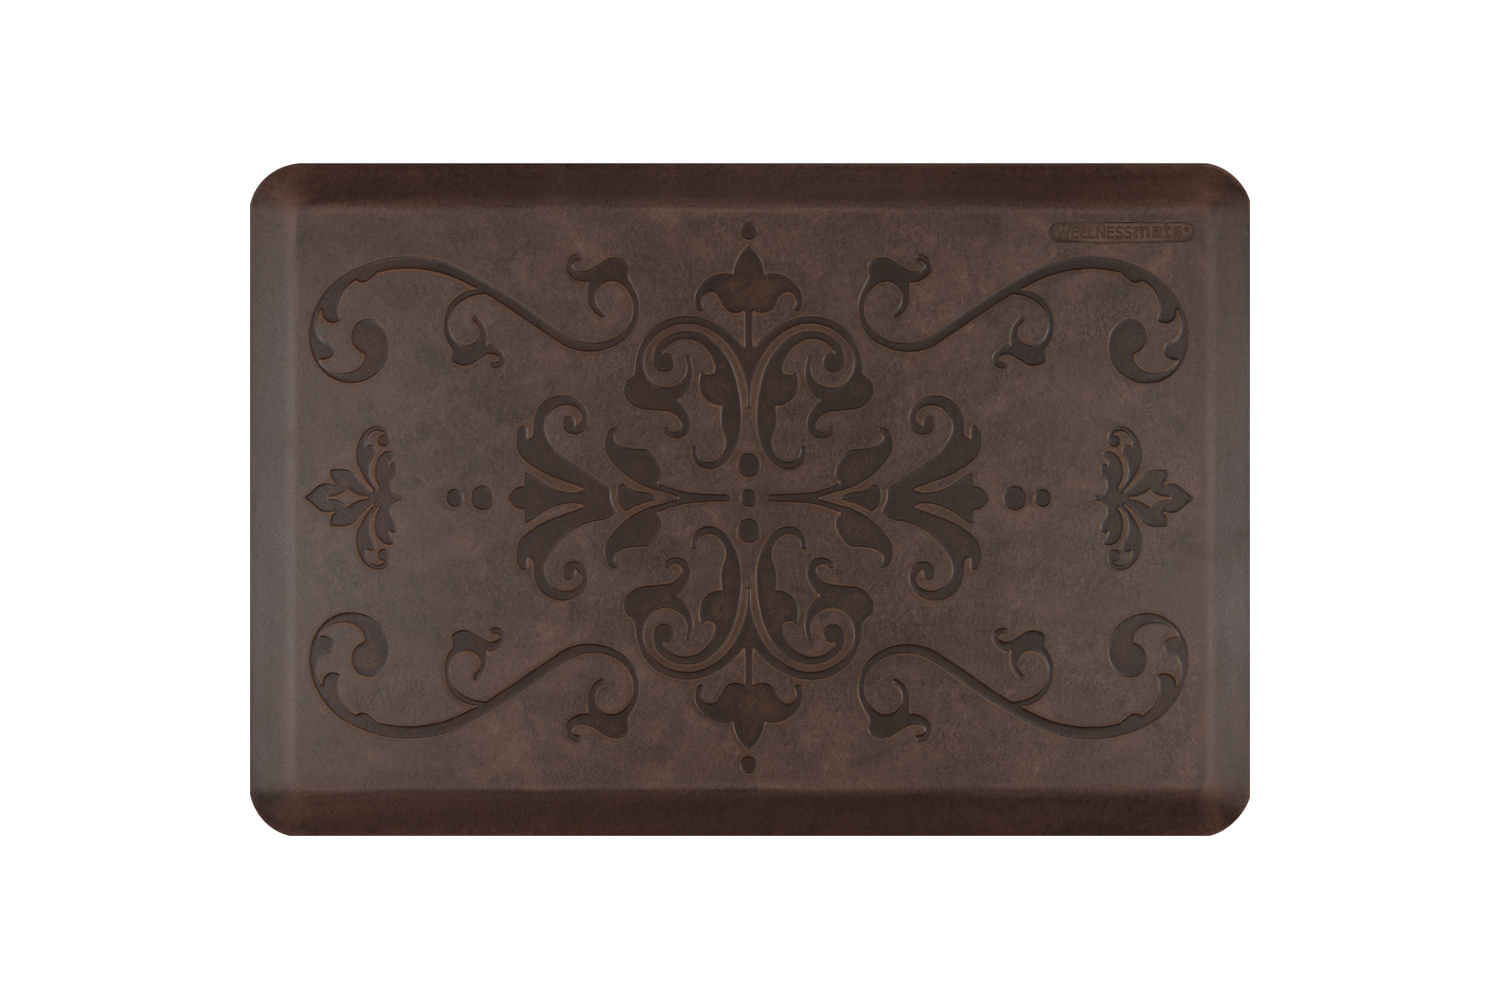 Wellness Anti-Fatigue Kitchen Mat, Entwine - 3 x 2 ft. - Antique Dark